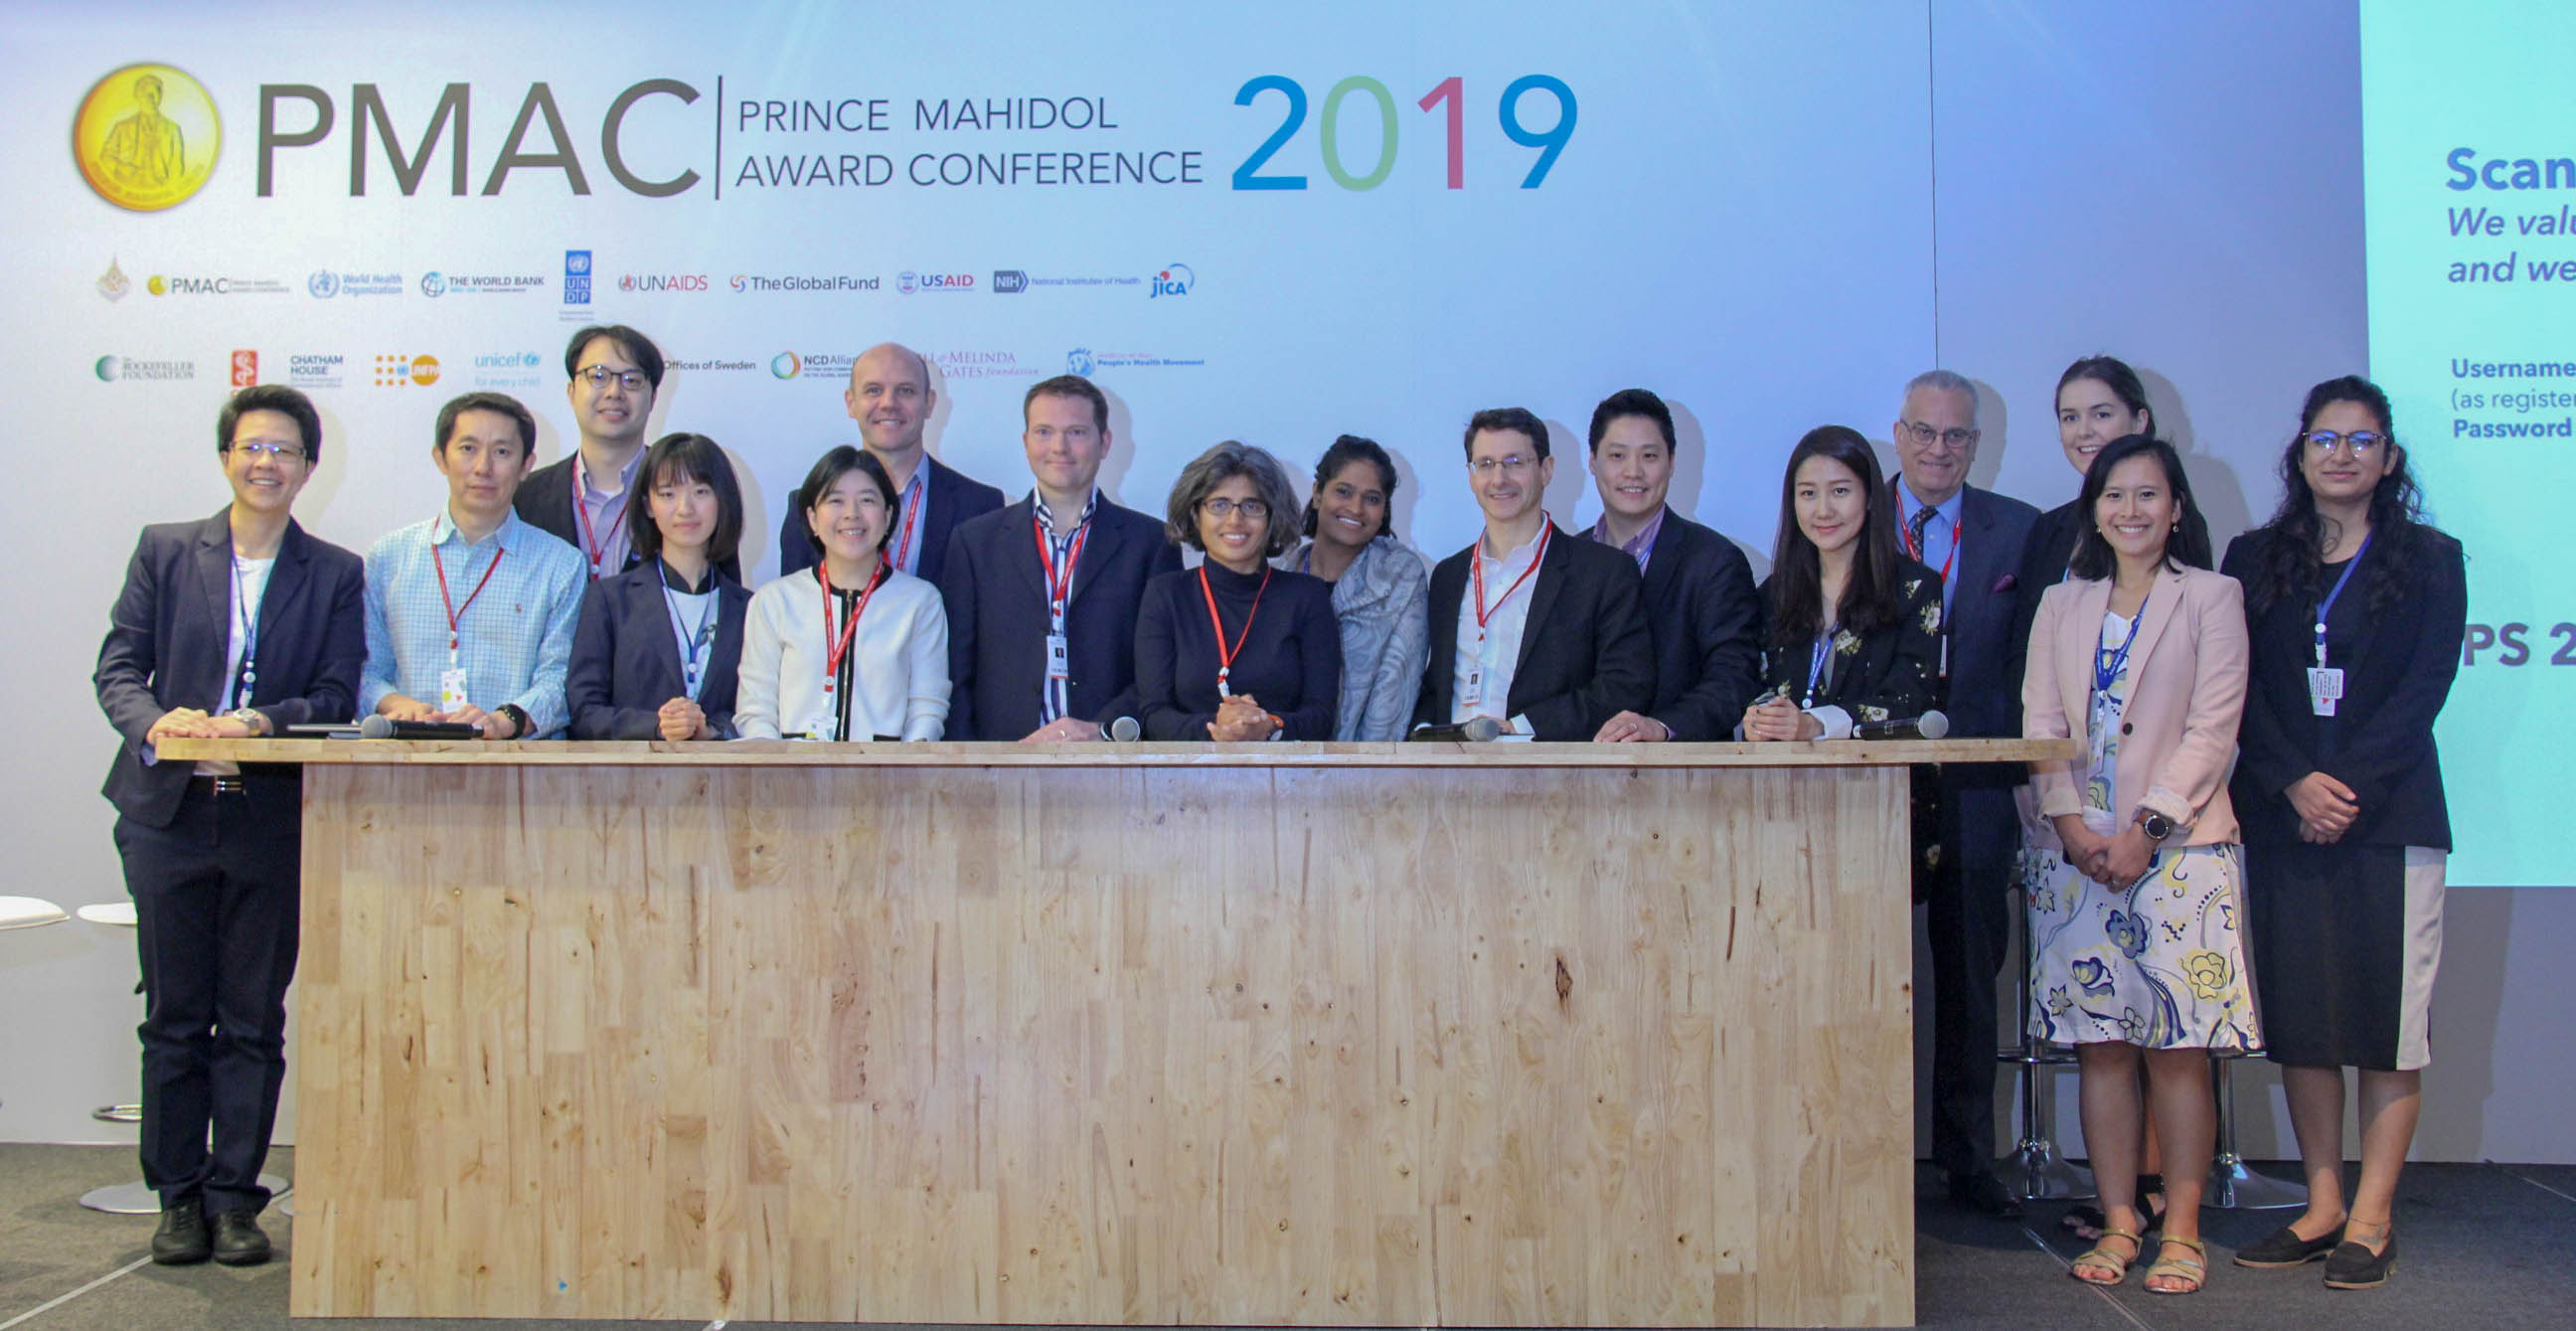 HITAP held a parallel session at Prince Mahidol Award Conference (PMAC) 2019